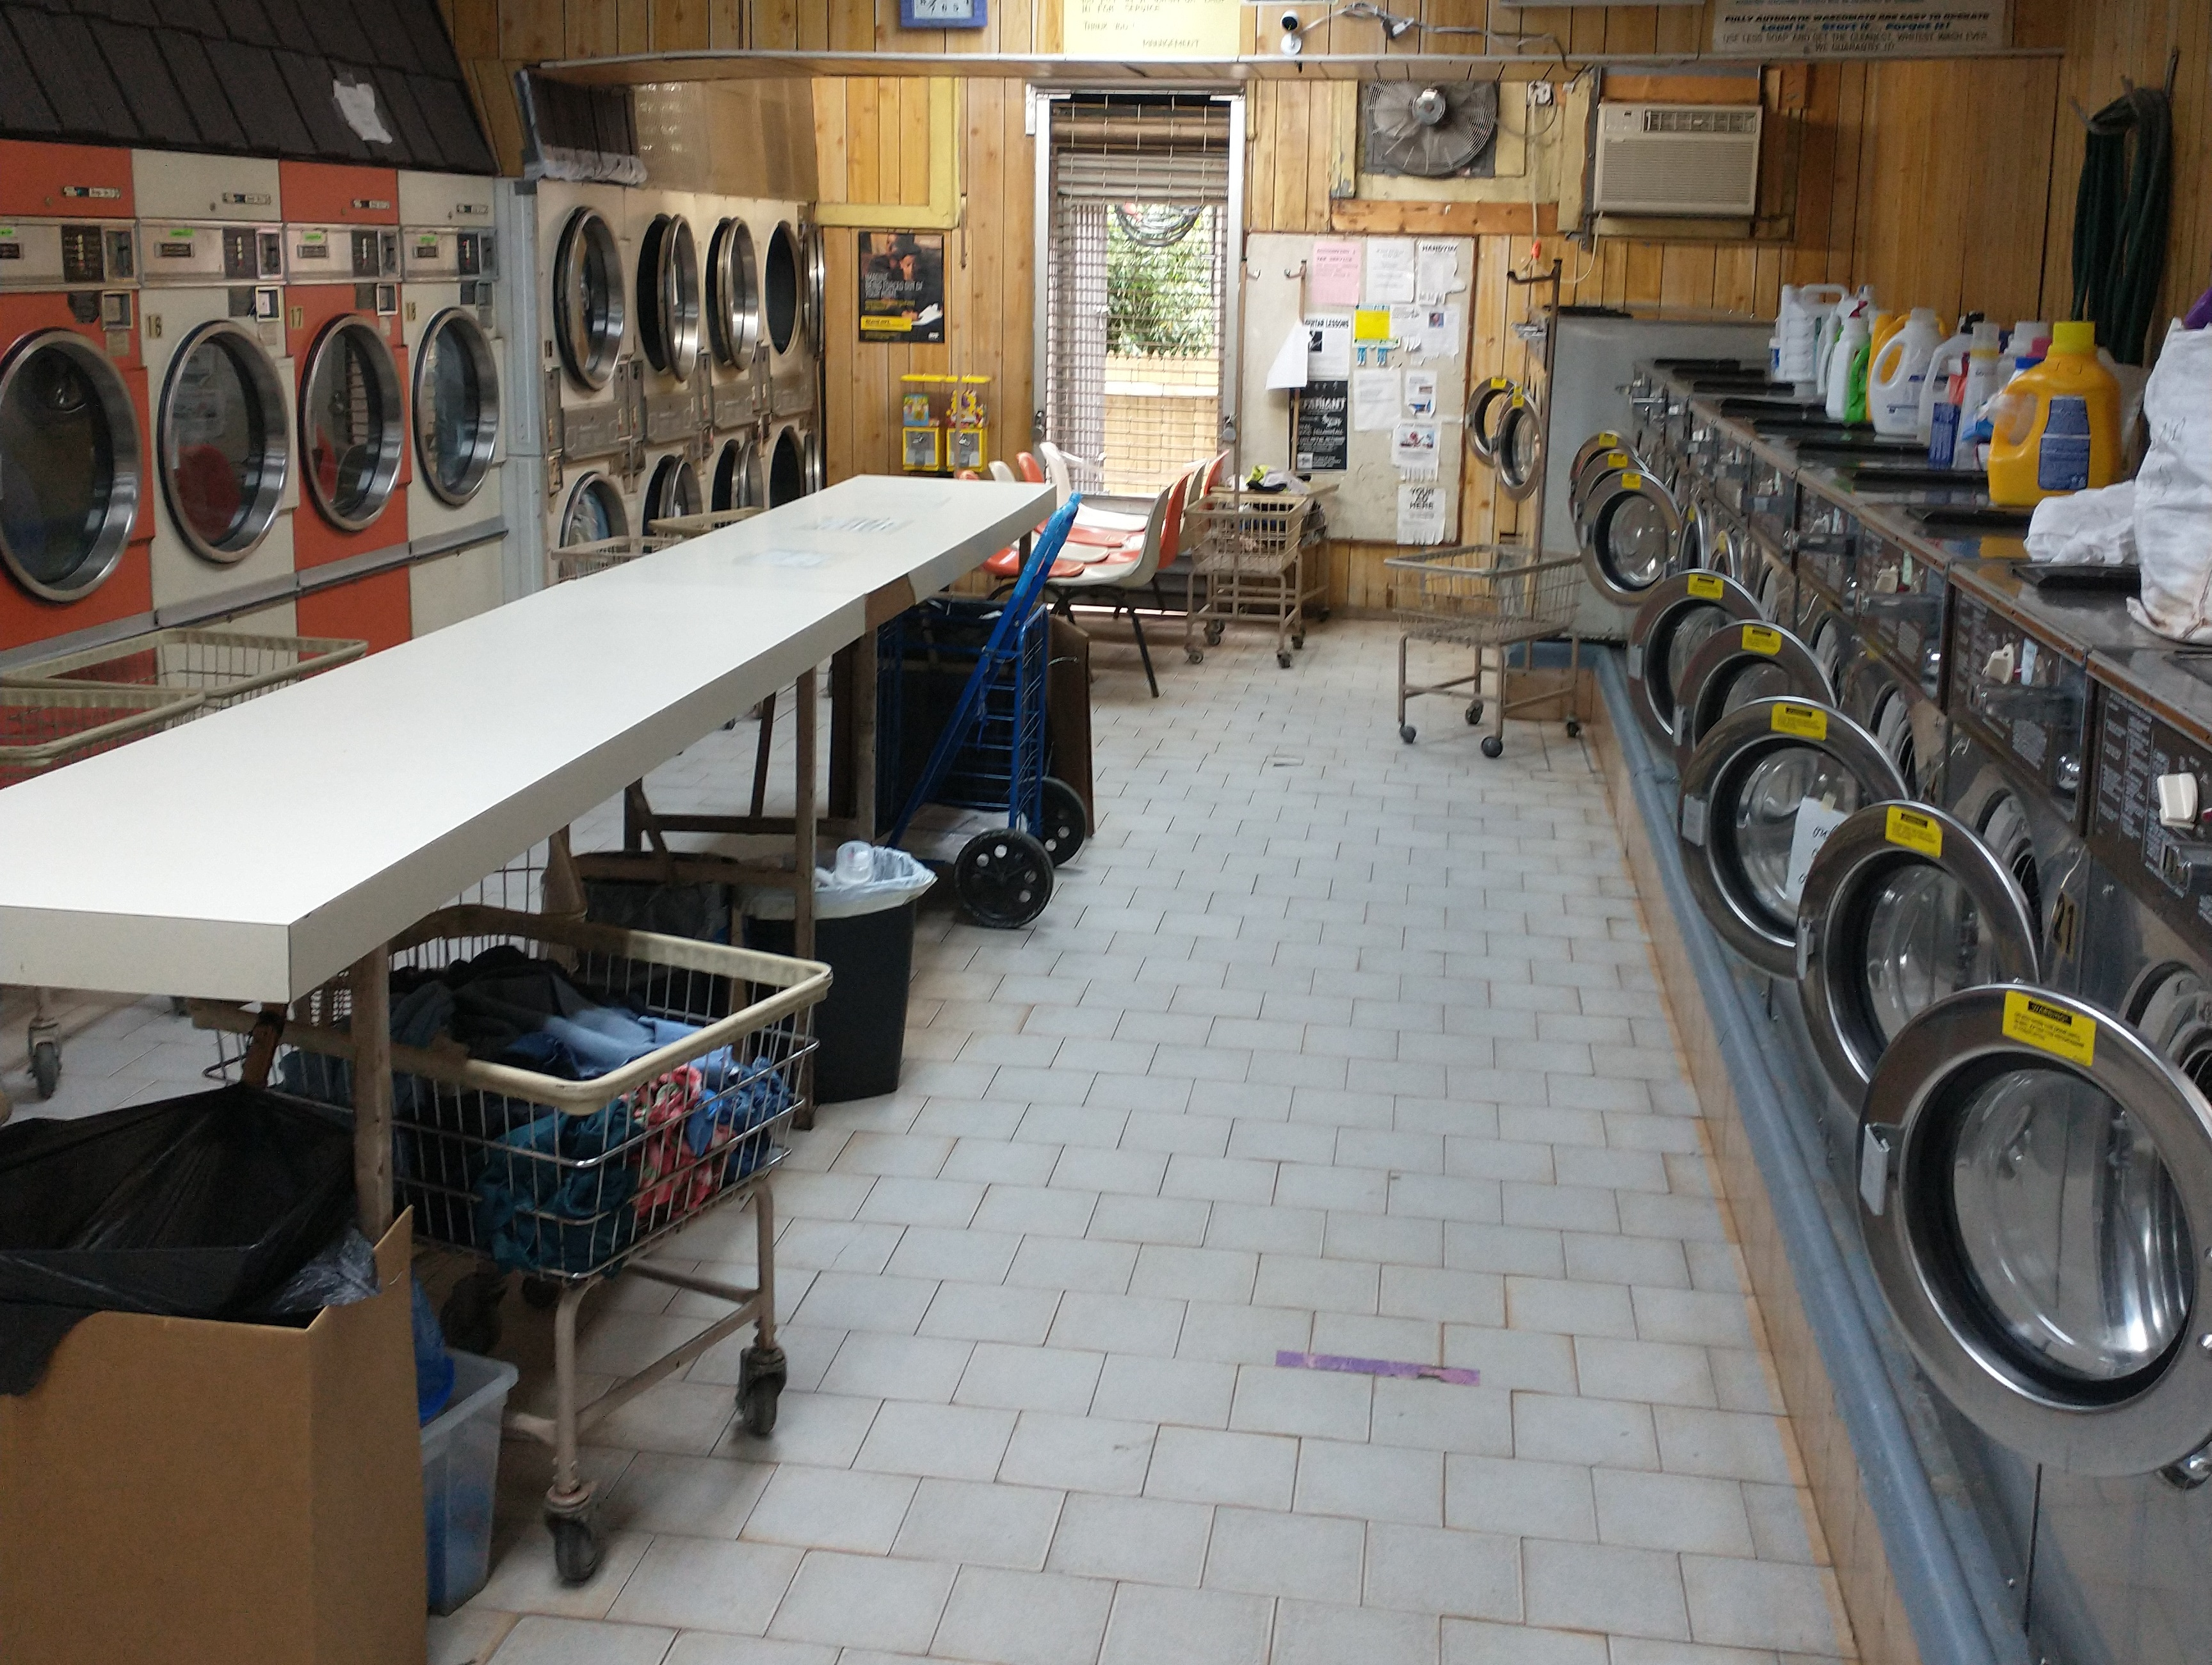 Laundromat Business for sale in Brooklyn